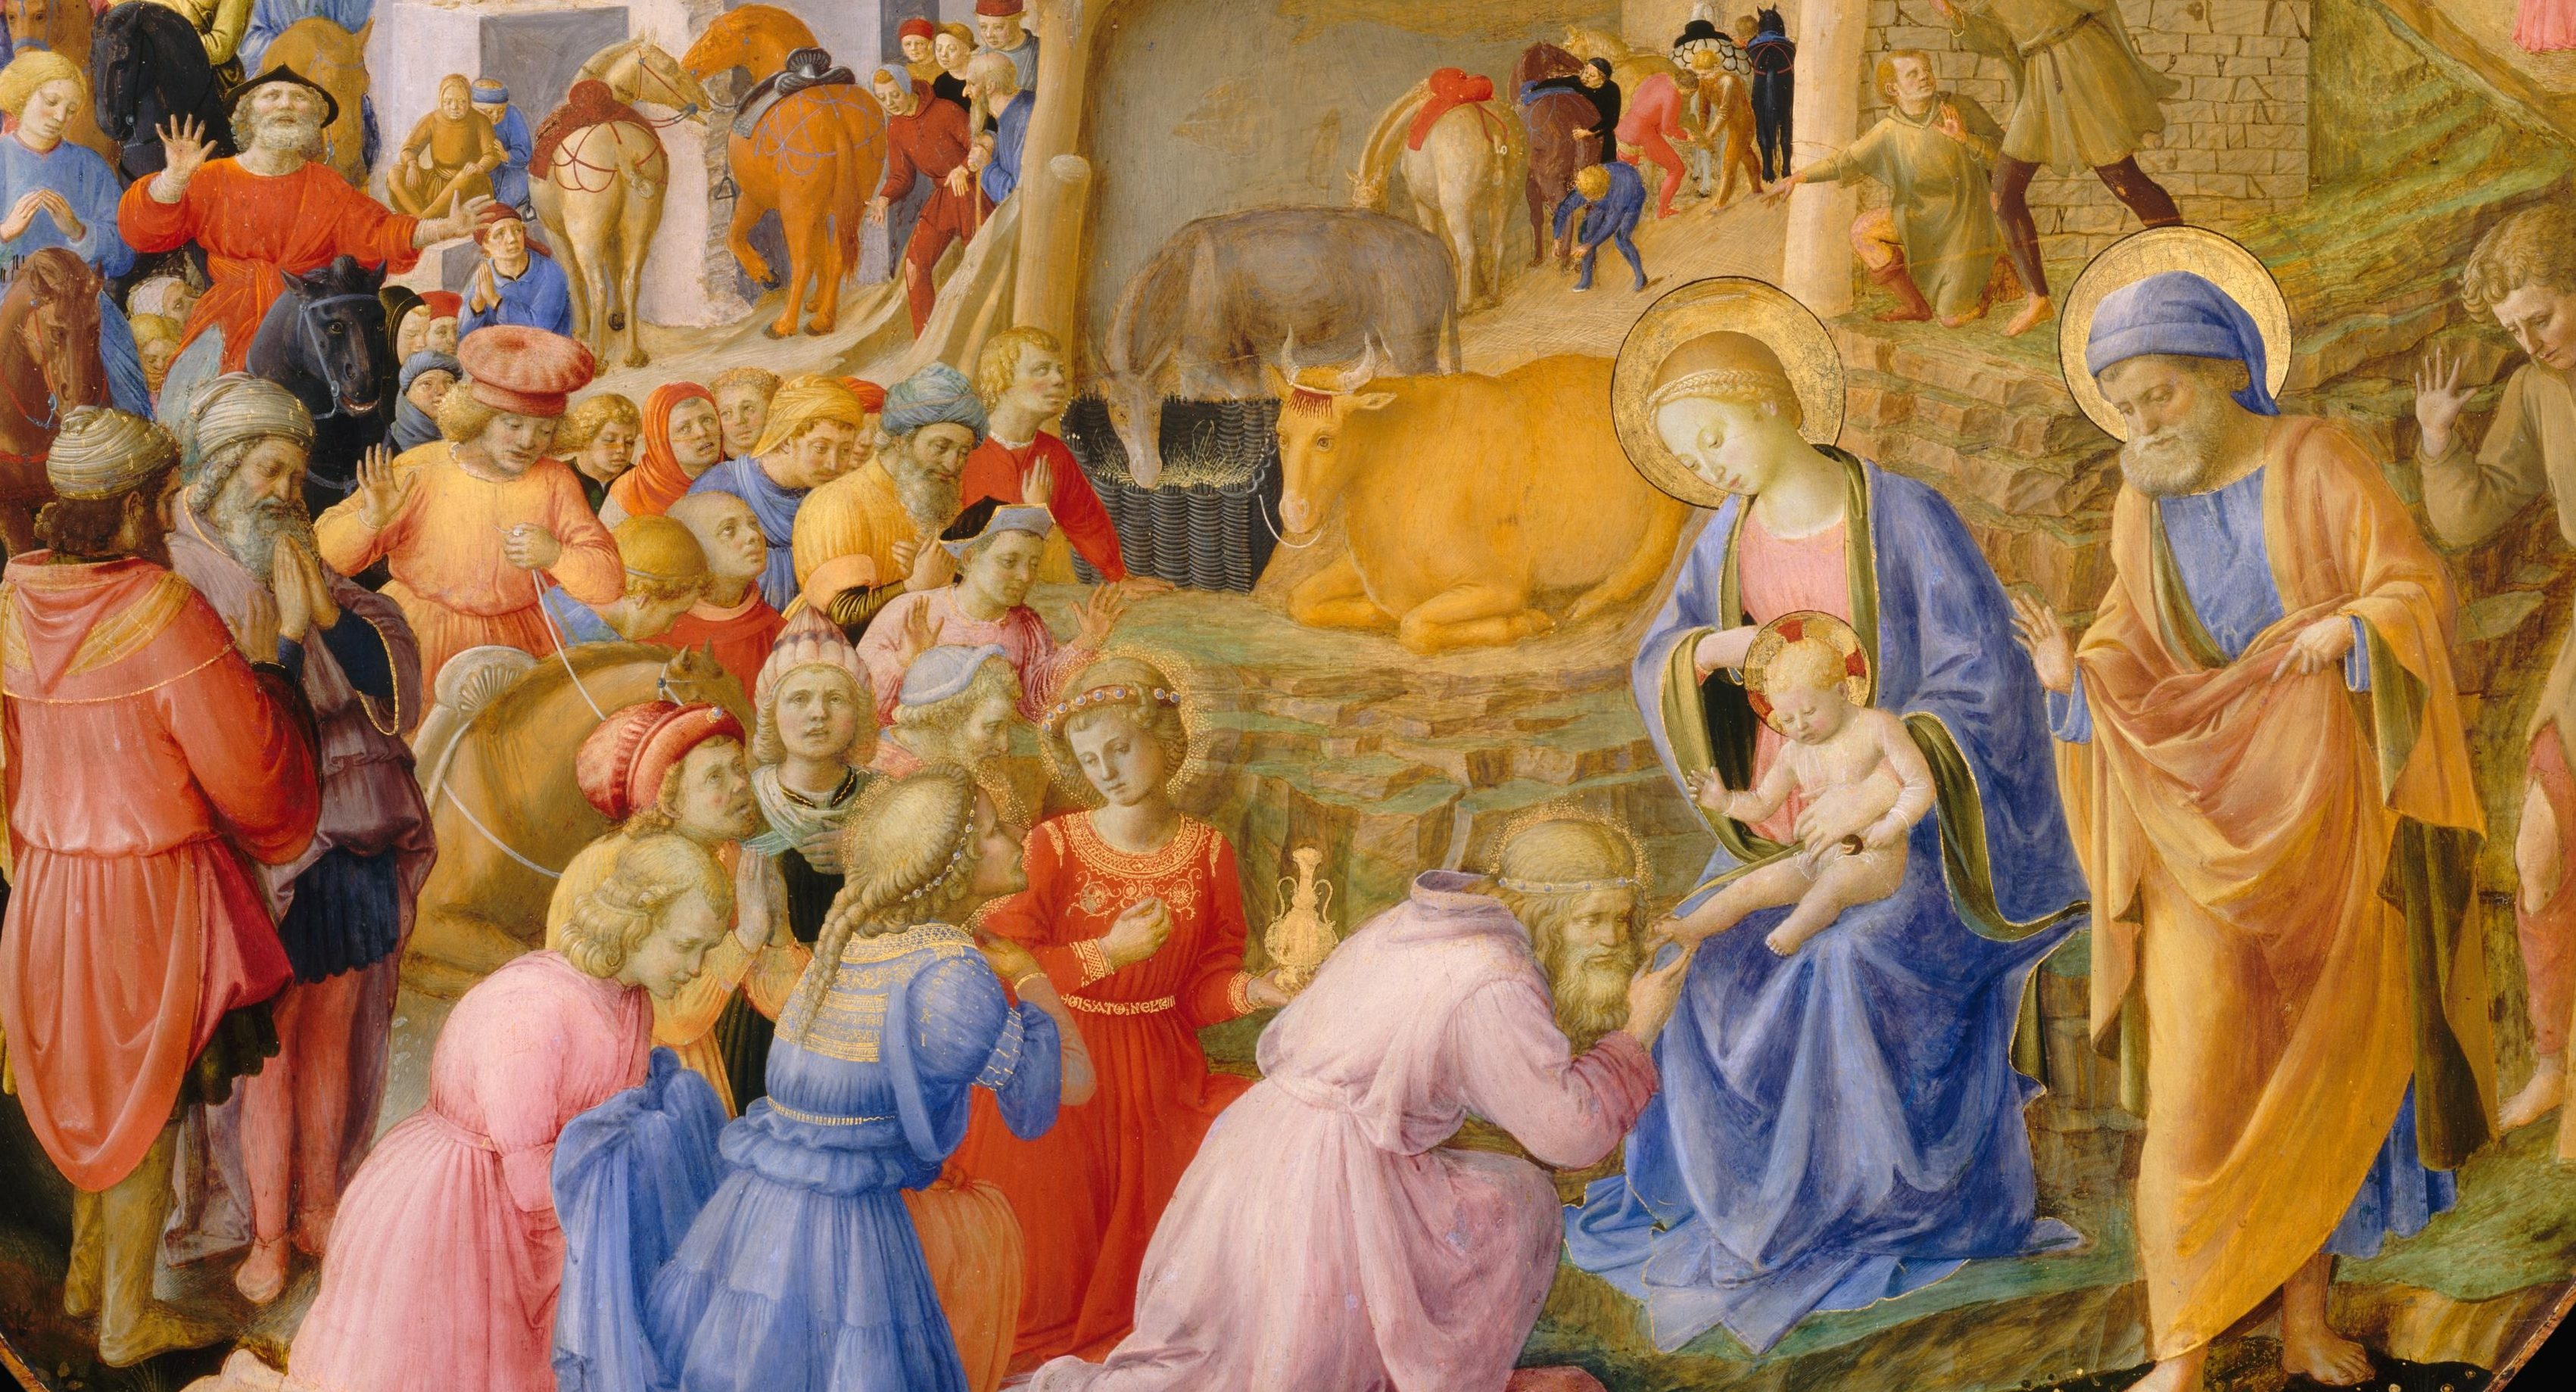 epiphany-our-lord-more-merit-following-angel-star